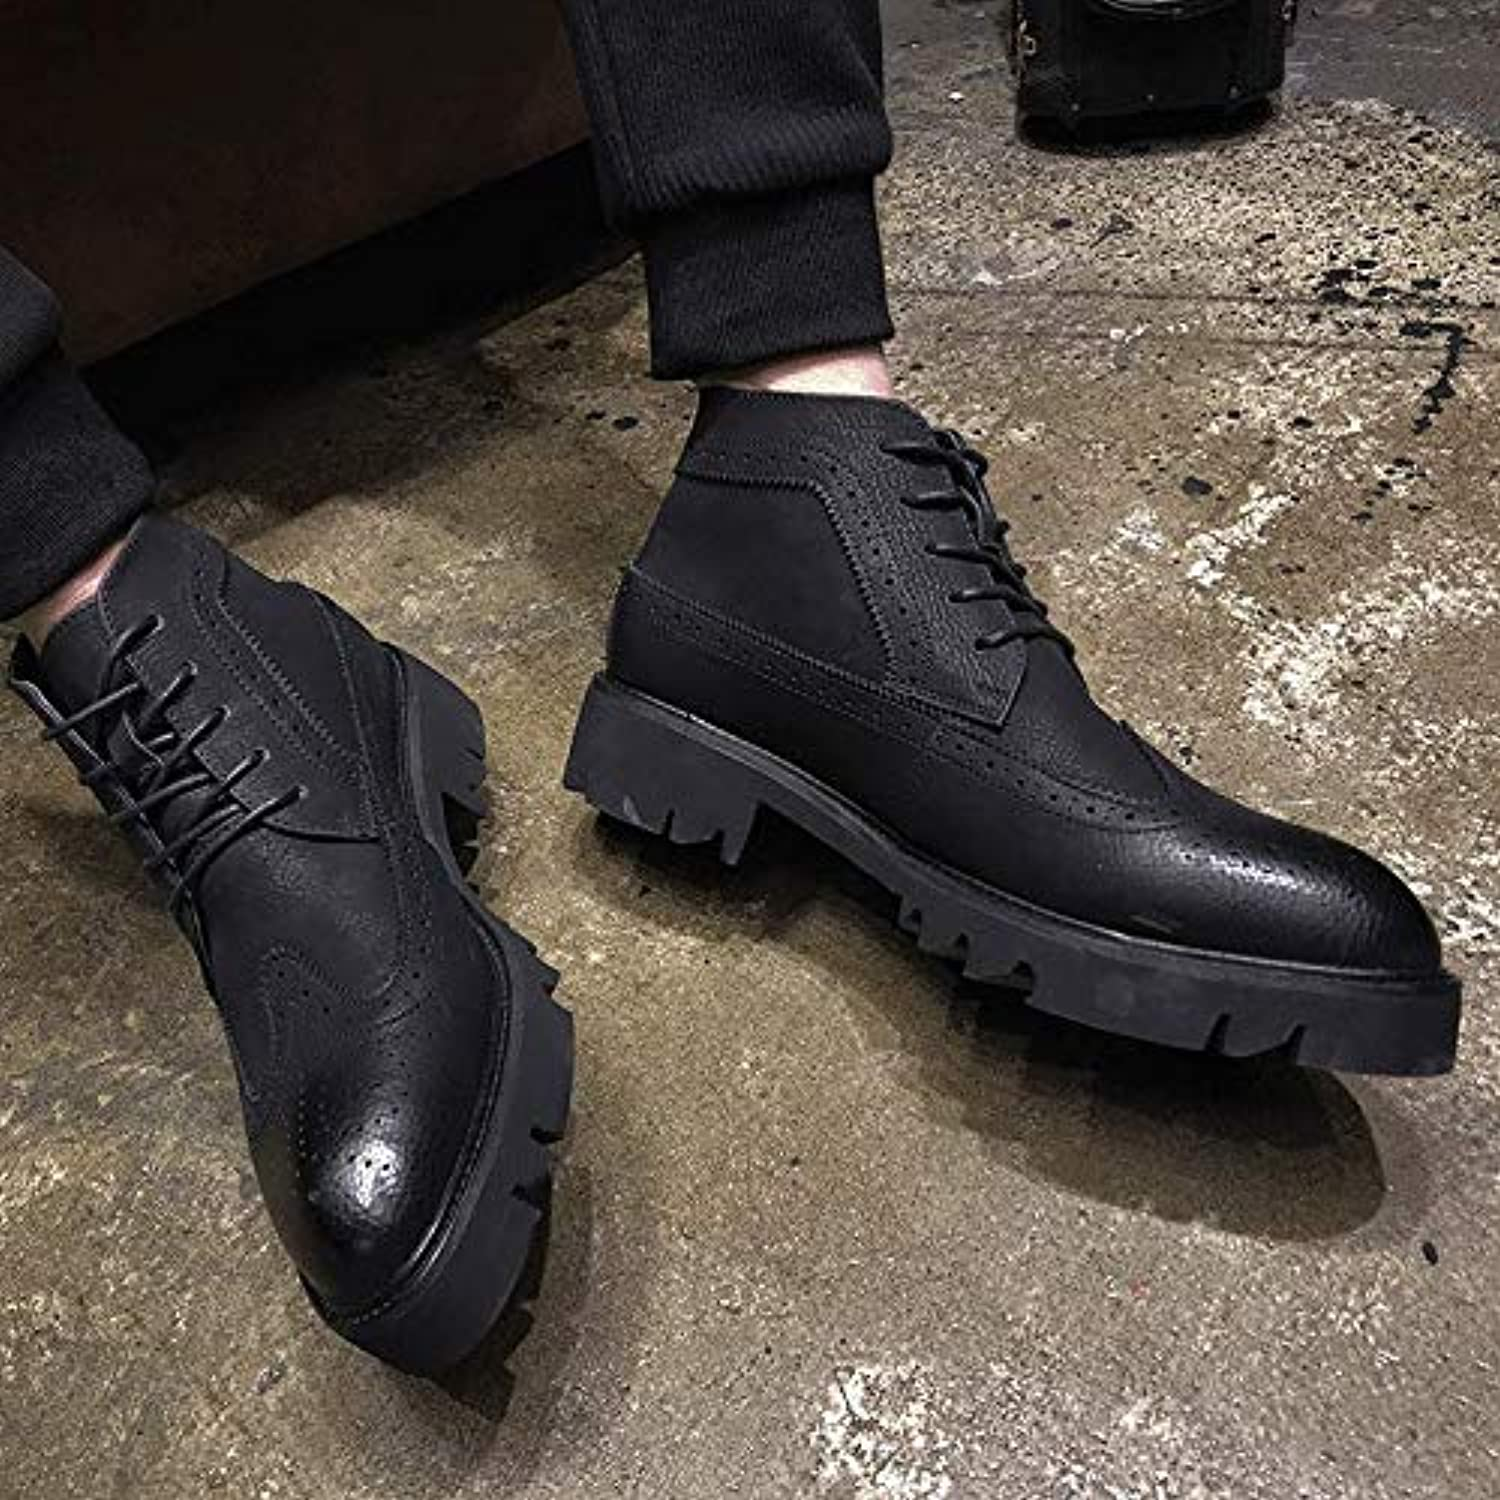 Shukun Men's boots Autumn And Winter High Men'S shoes Carved Thick Base Increased Men'S Boots Martin Boots In The Boots Chelsea Boots